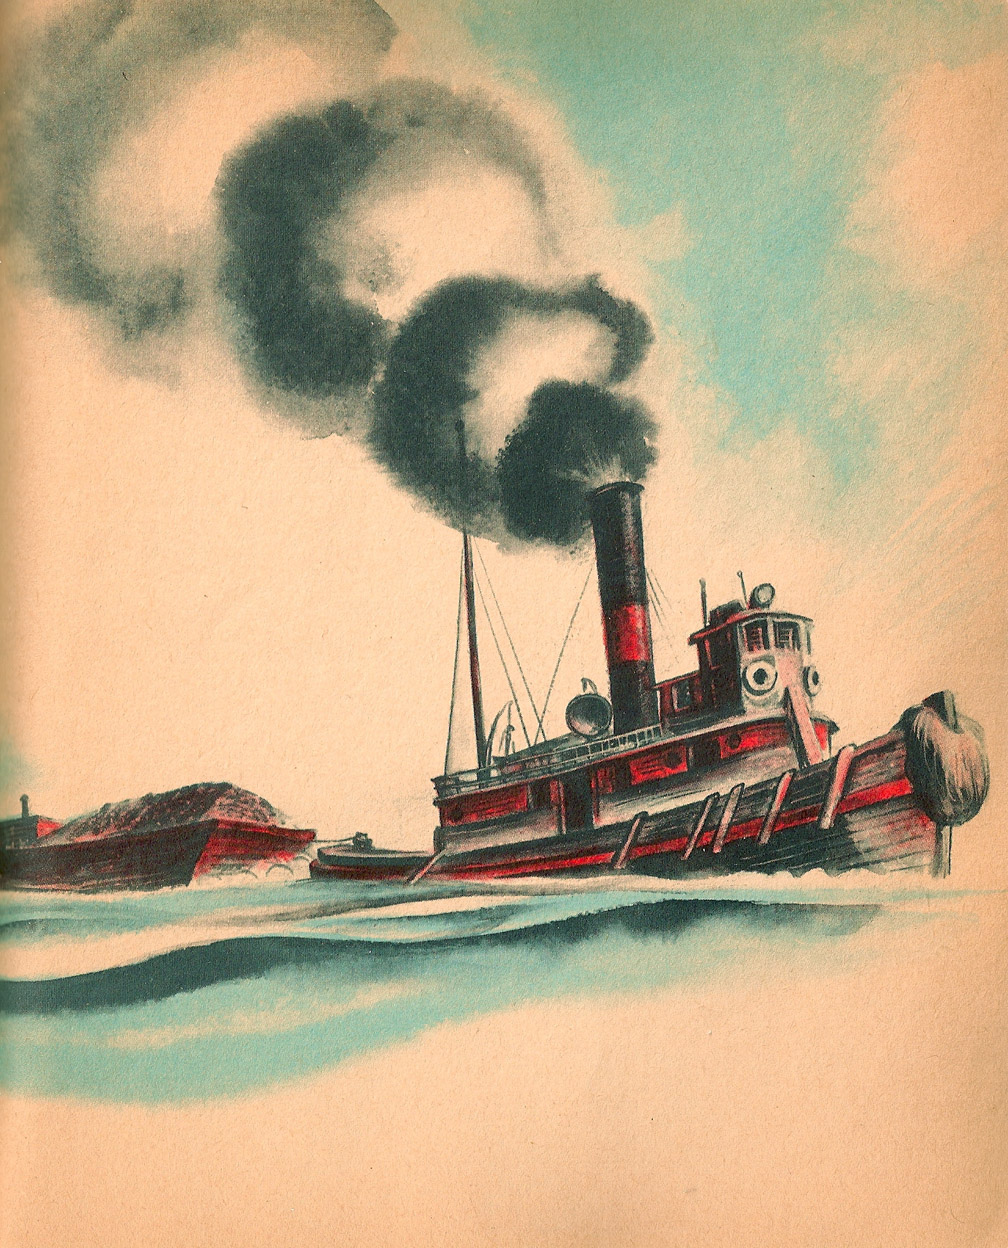 celebrate-picture-books-picture-book-review-the-little-red-lighthouse-and-the-great-gray-bridge-tugboat